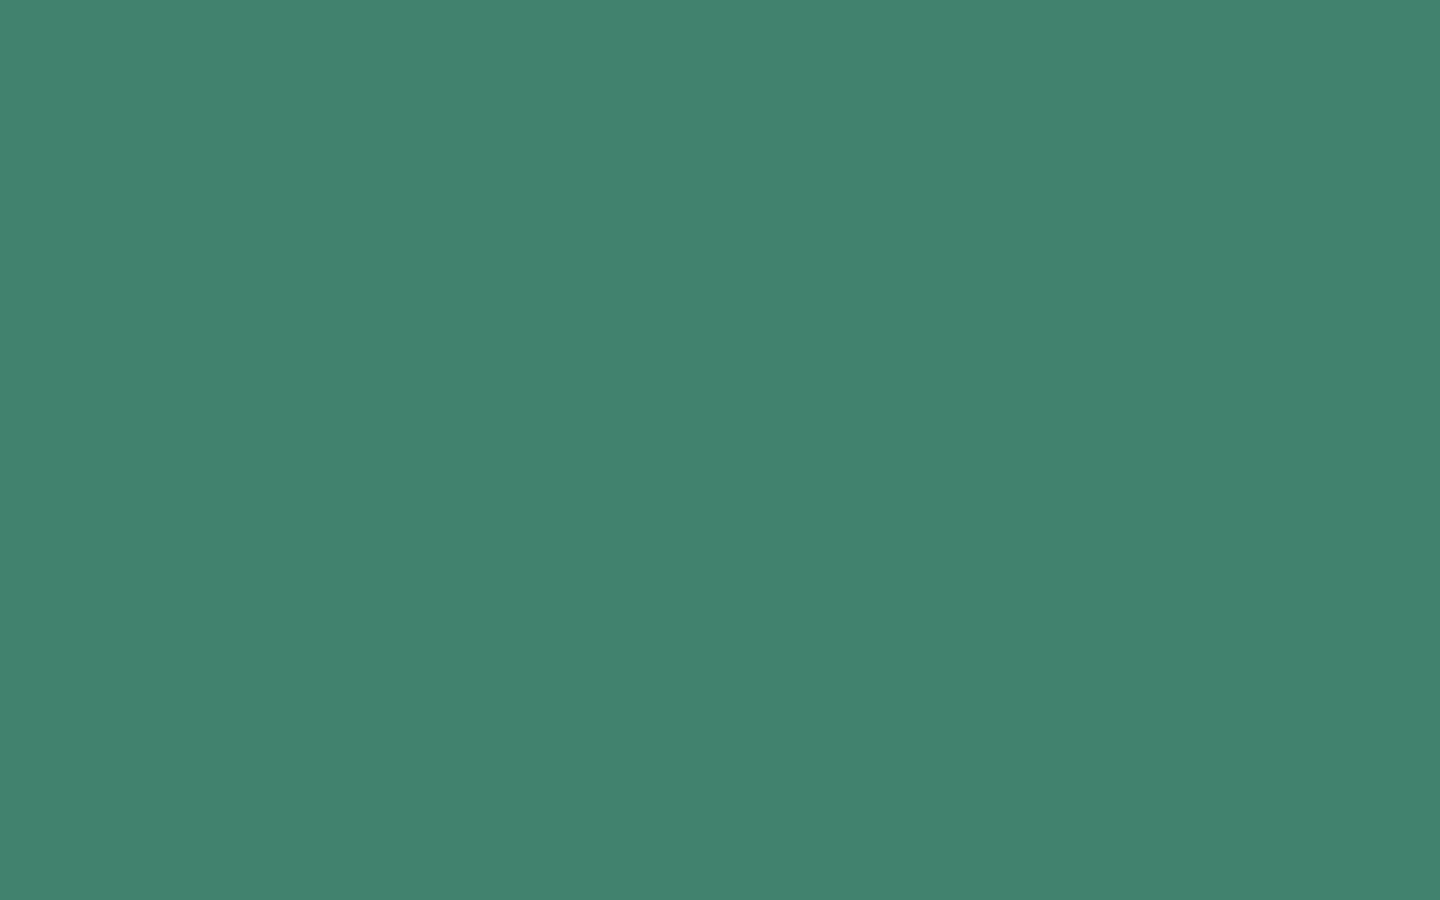 1440x900 Viridian Solid Color Background